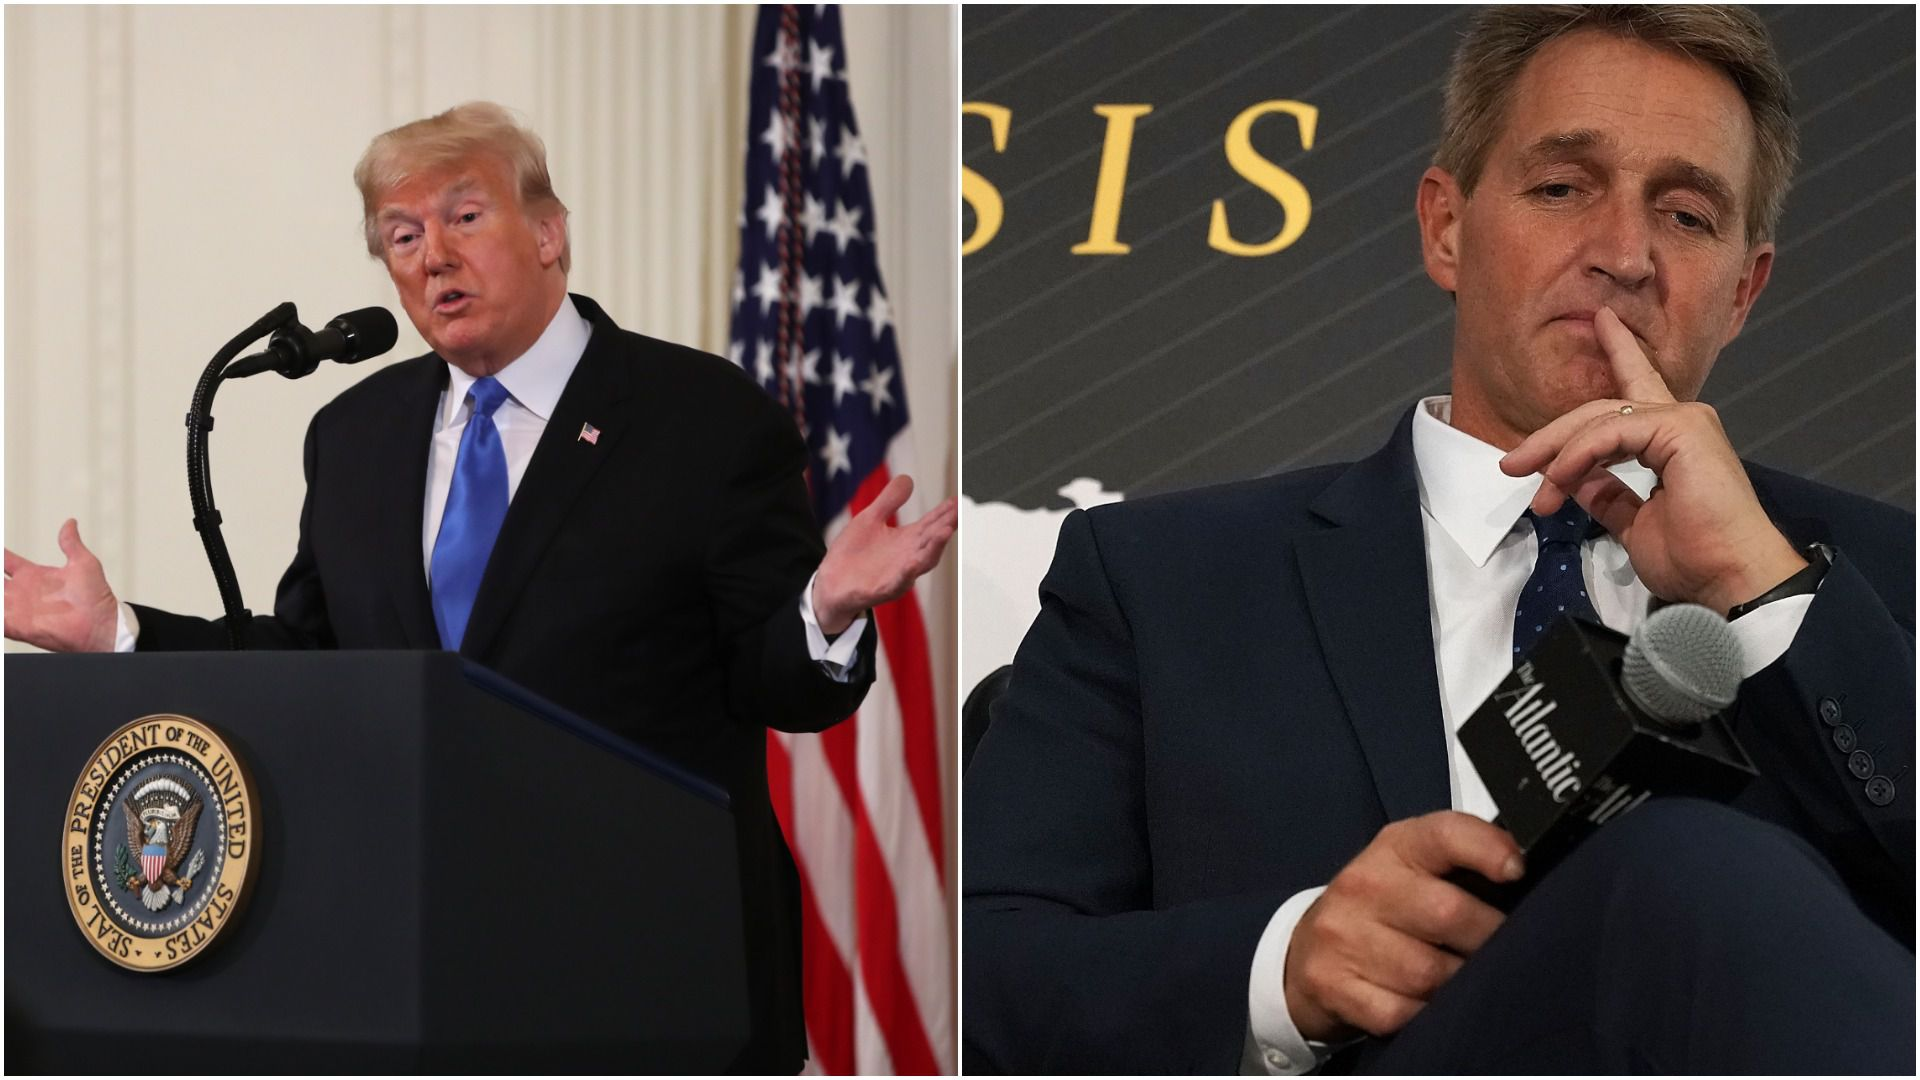 President Trump and Jeff Flake